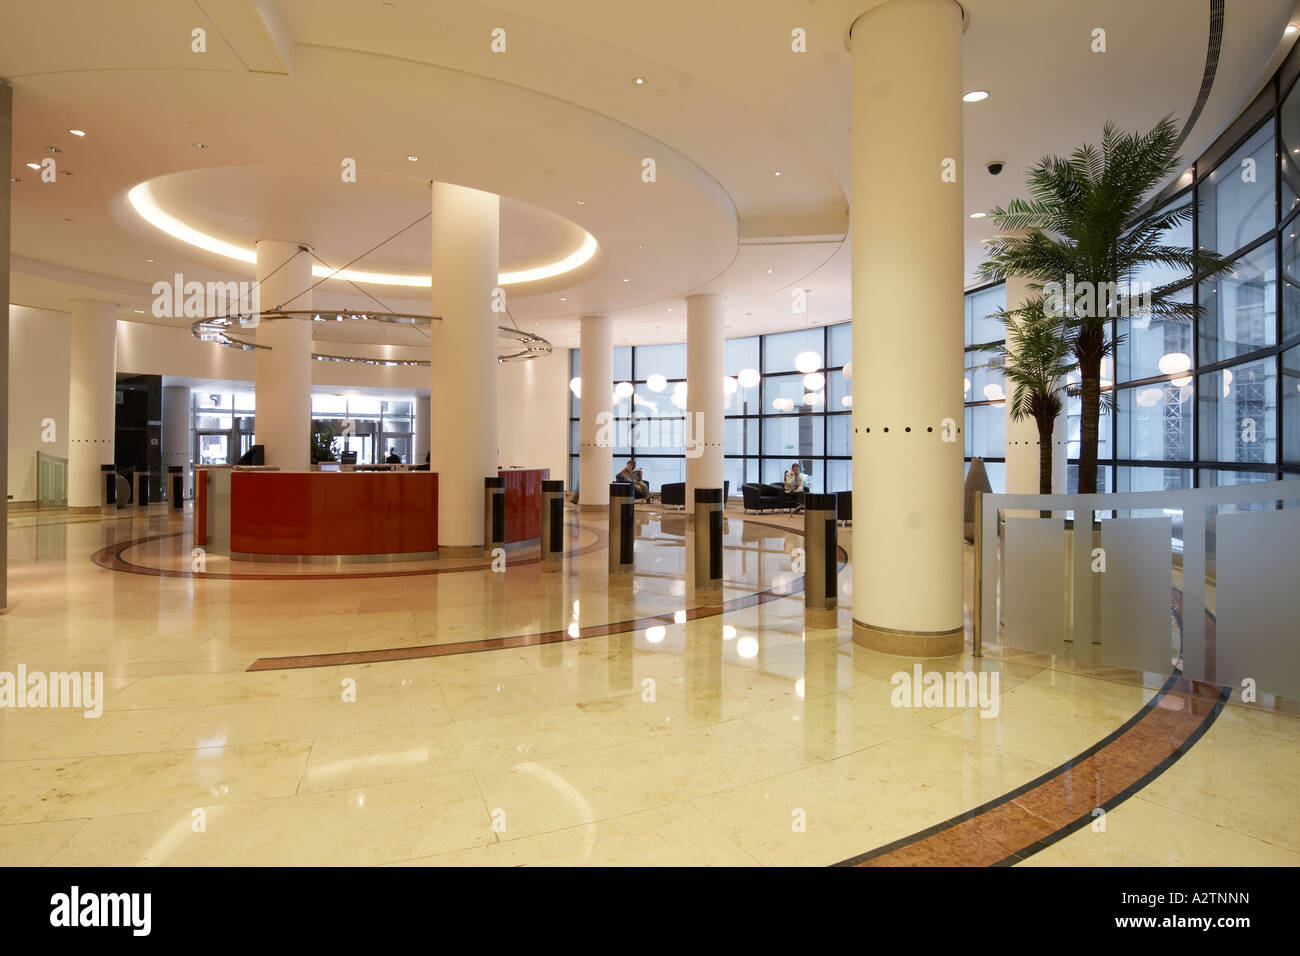 99 Bishopsgate Commercial Office Building Marble Reception Lobby With People City Of London EC2 England UK